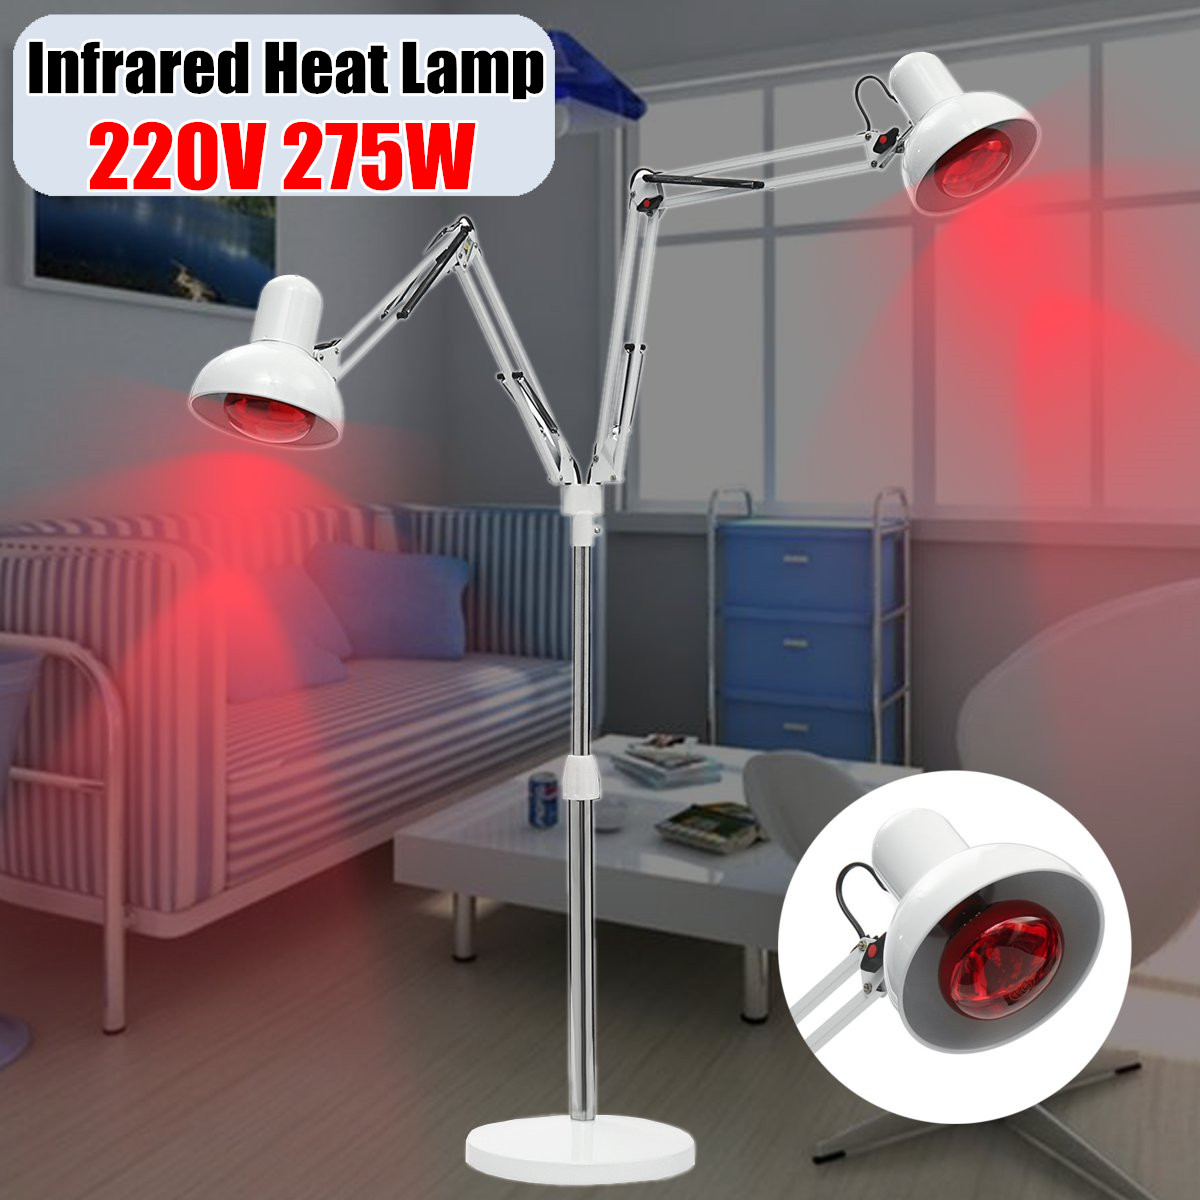 220V 275W E27 Infrared Physiotherapy Explosion proof Lamp Heater for Muscle Pain Cold Relief Light Therapy Infra Care Massage